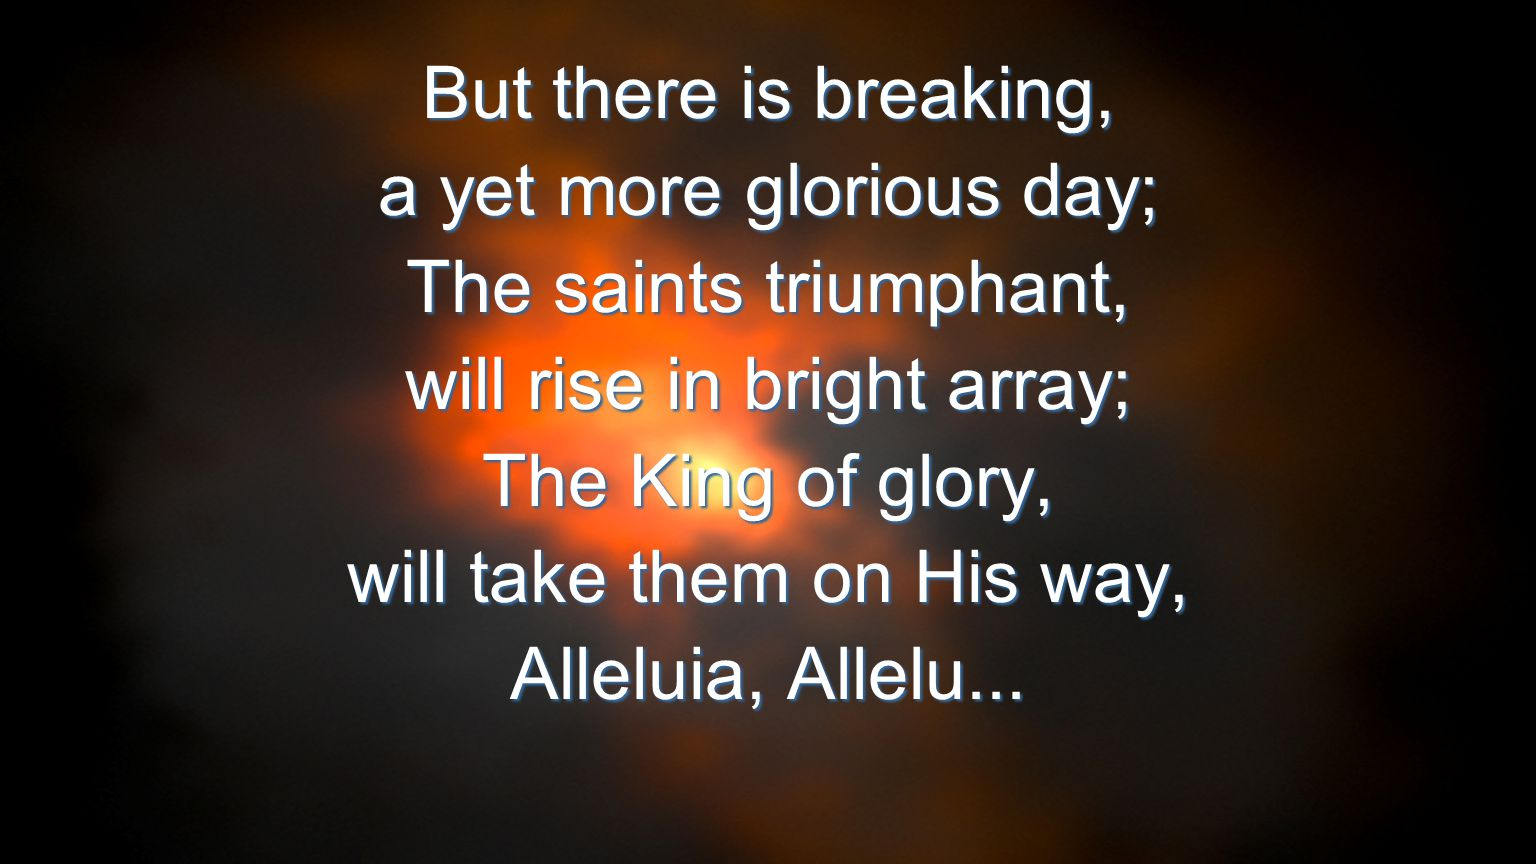 But there is breaking, a yet more glorious day; The saints triumphant, will rise in bright array; The King of glory, will take them on His way, Allelu